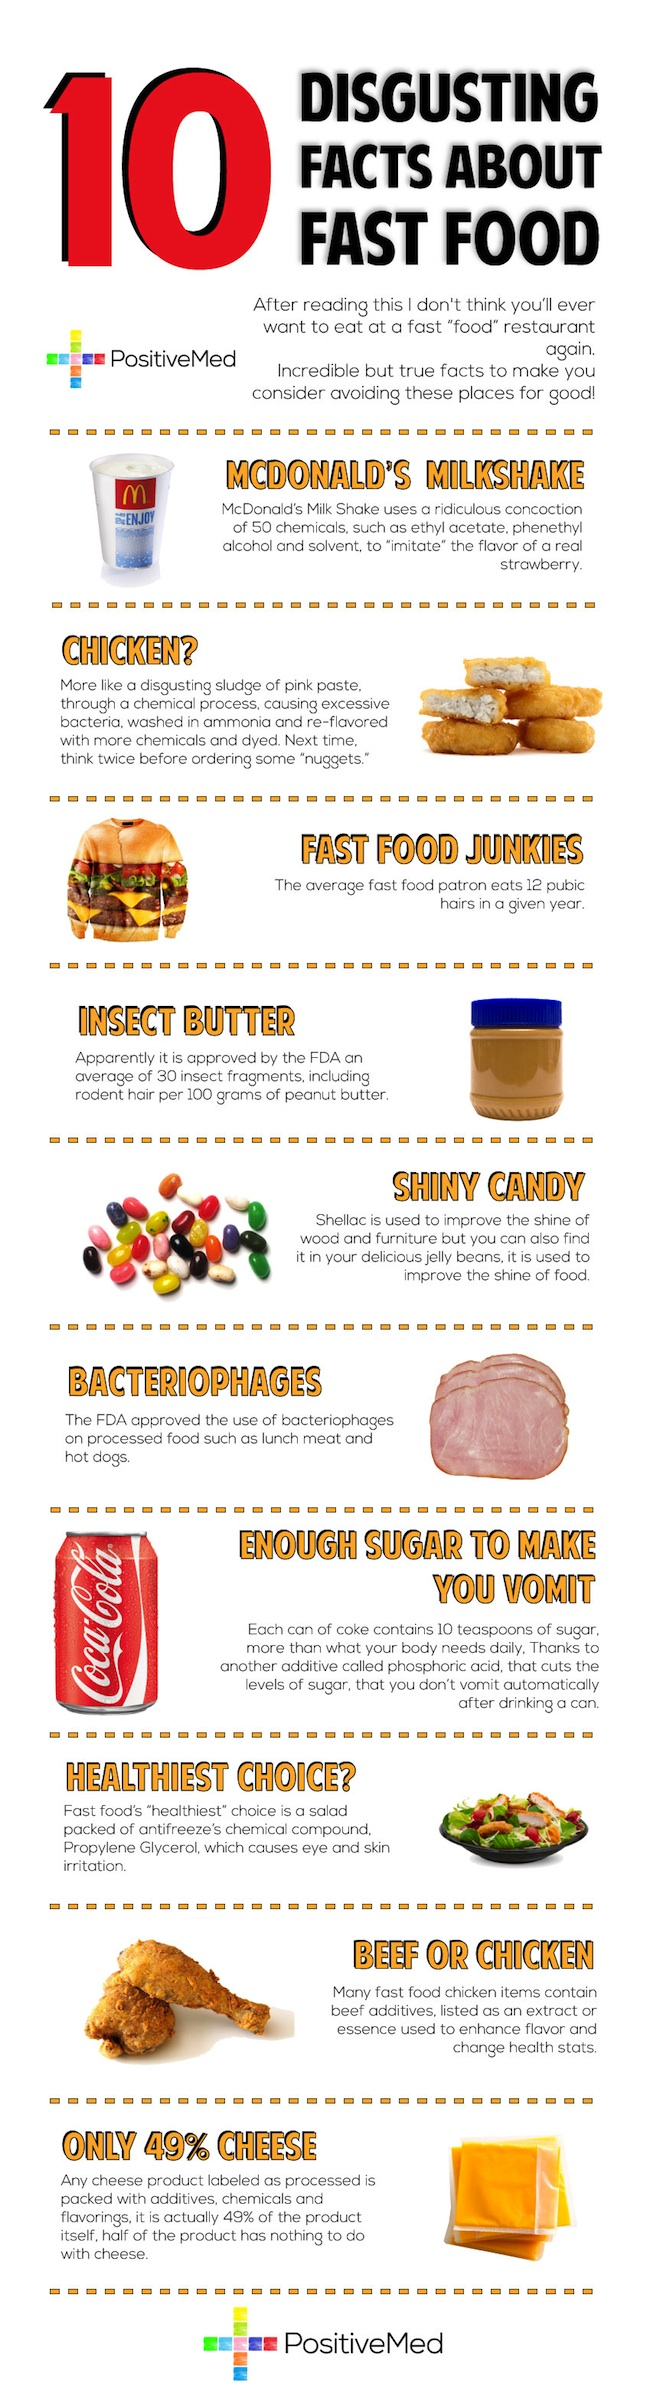 10 Shockingly Disgusting Facts About Fast Food Infographic